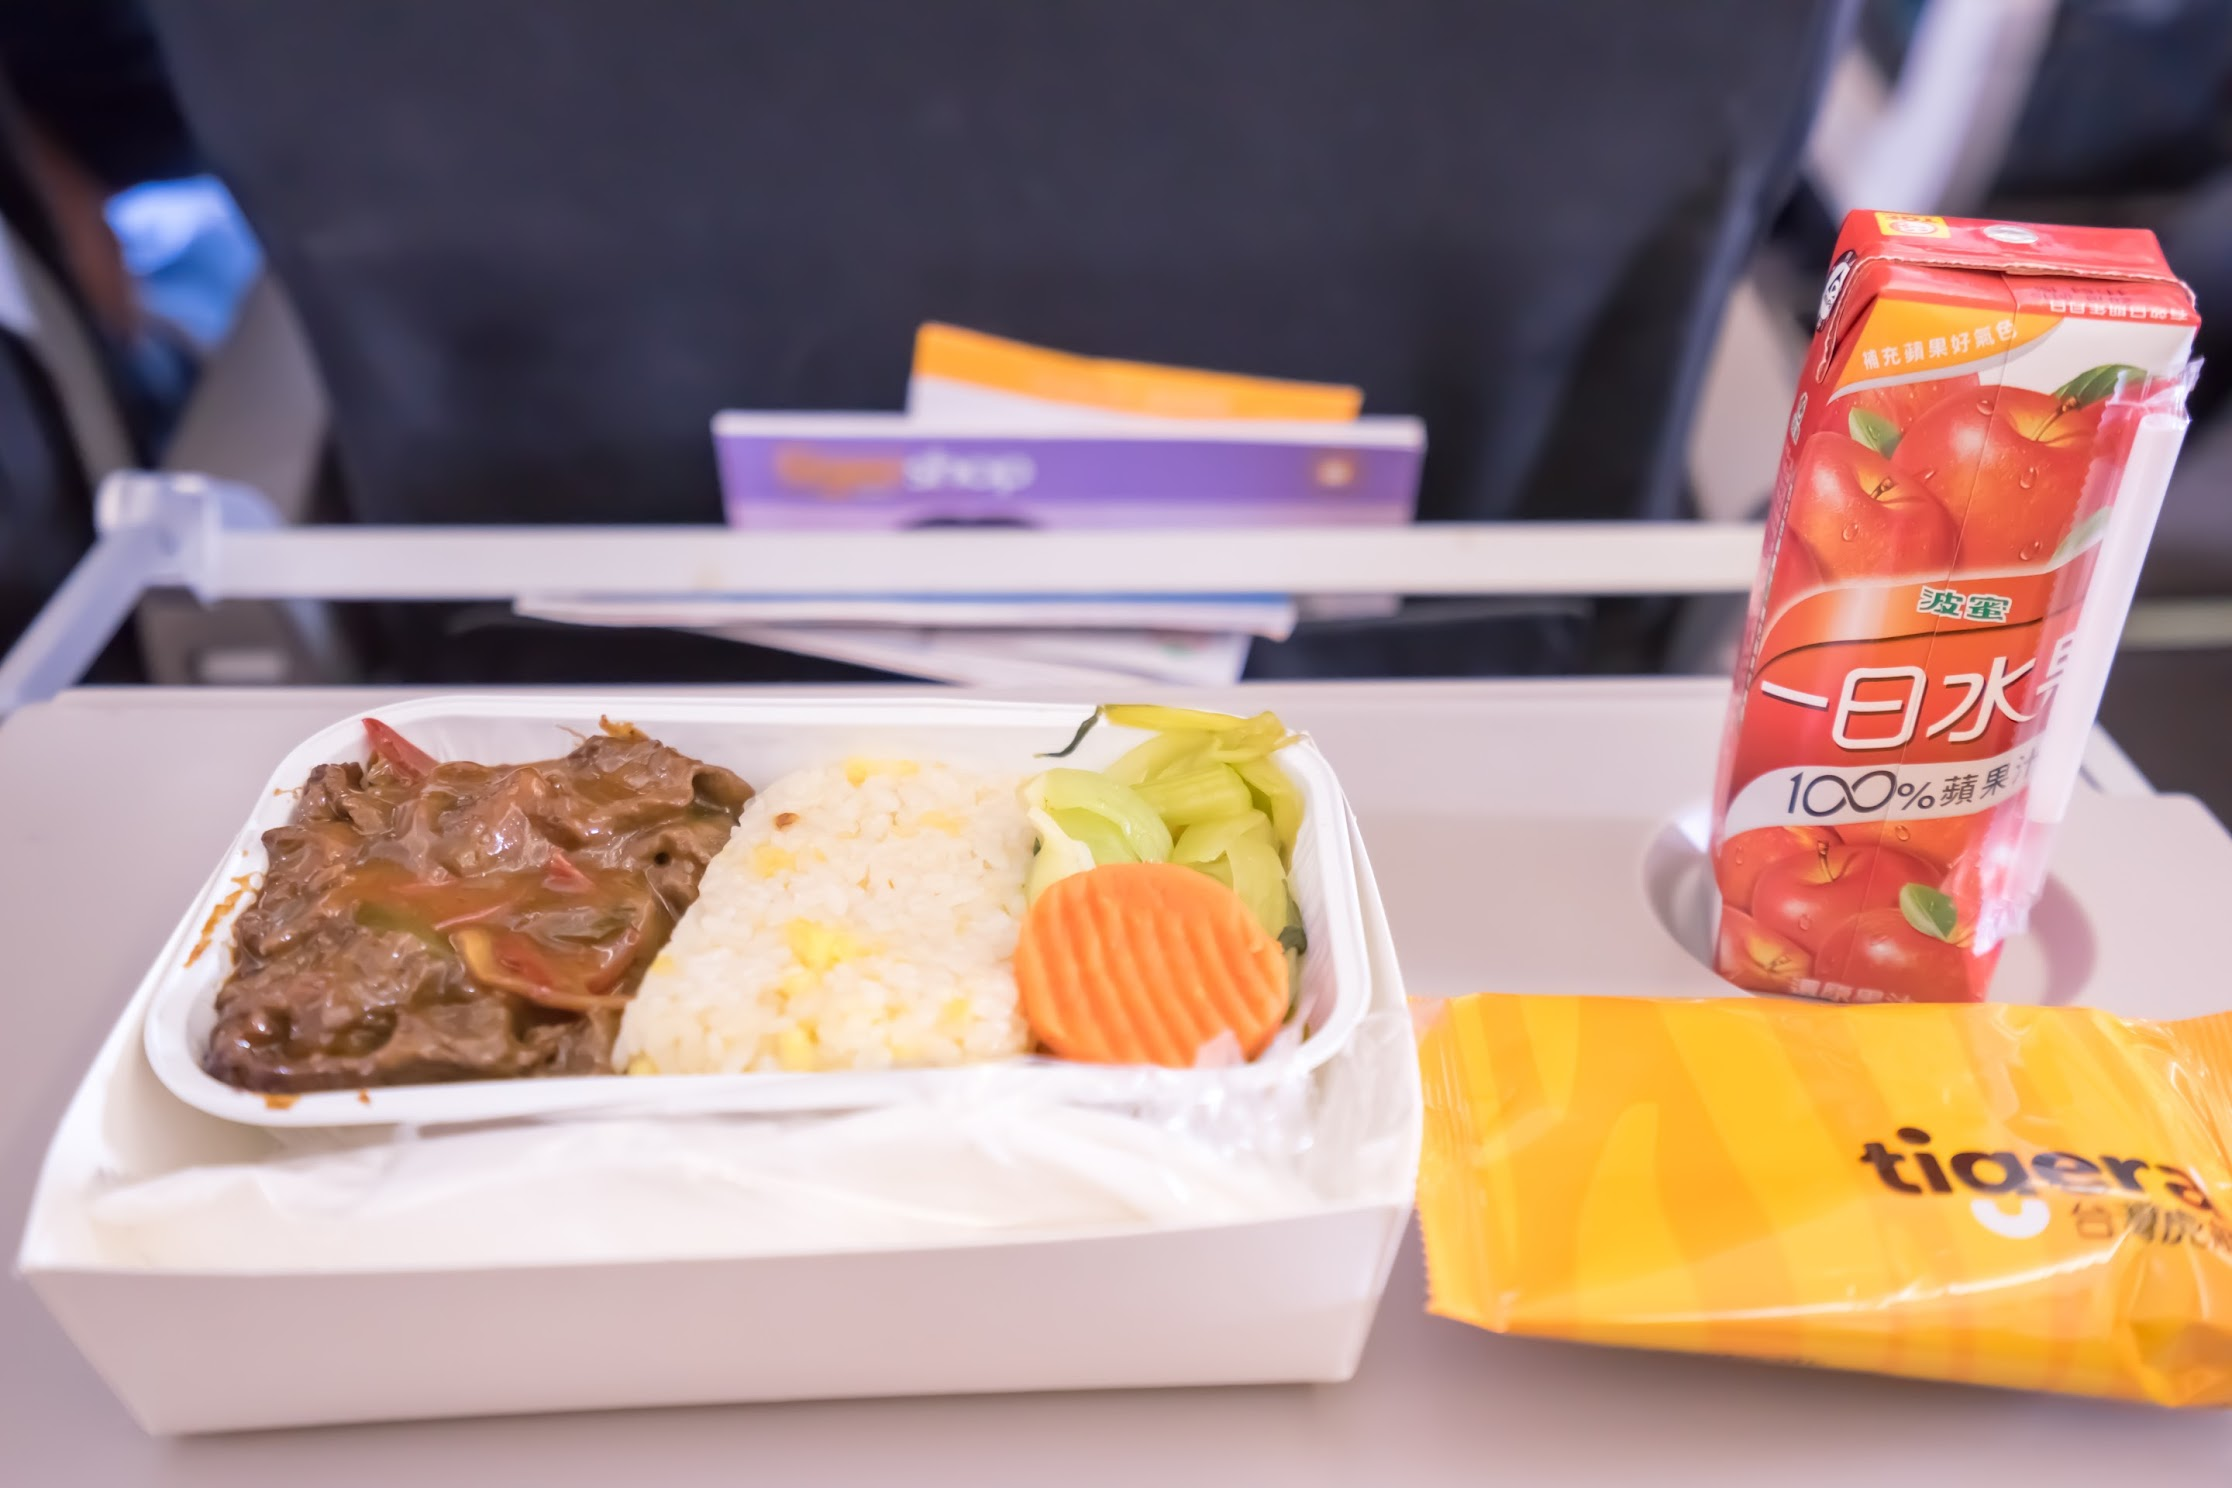 Tigerair Taiwan Meal